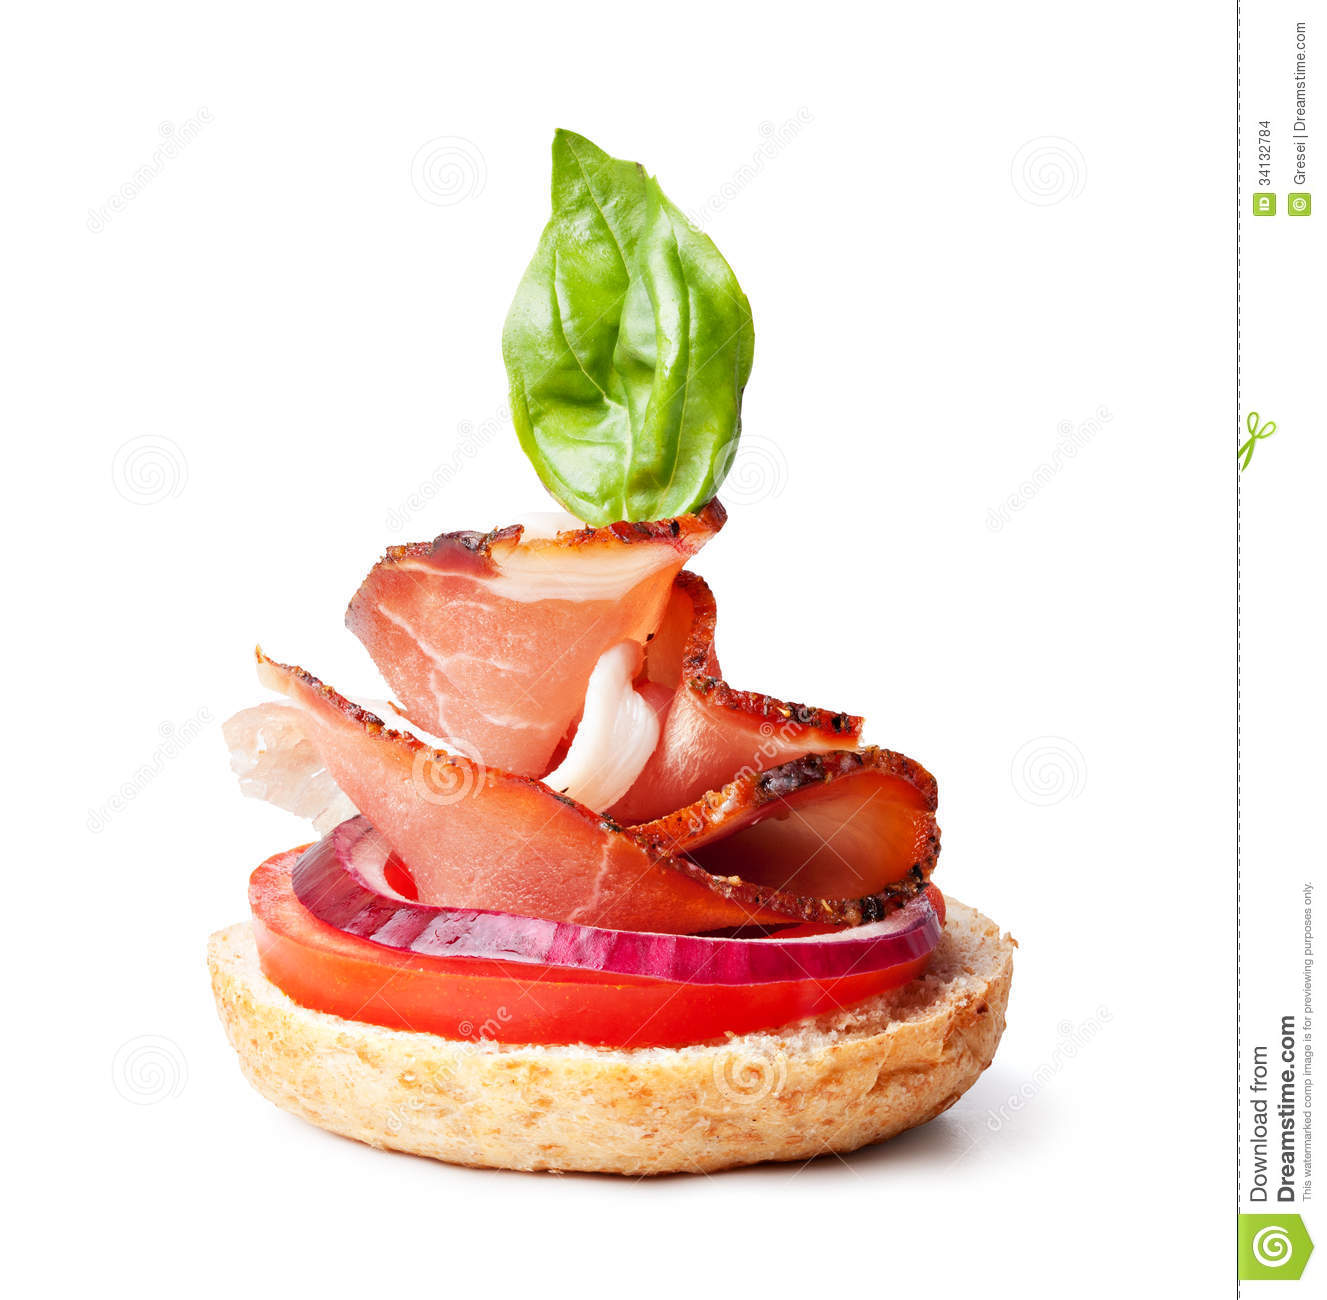 Delicious prosciutto canape stock photo image 34132784 for Prosciutto and melon canape